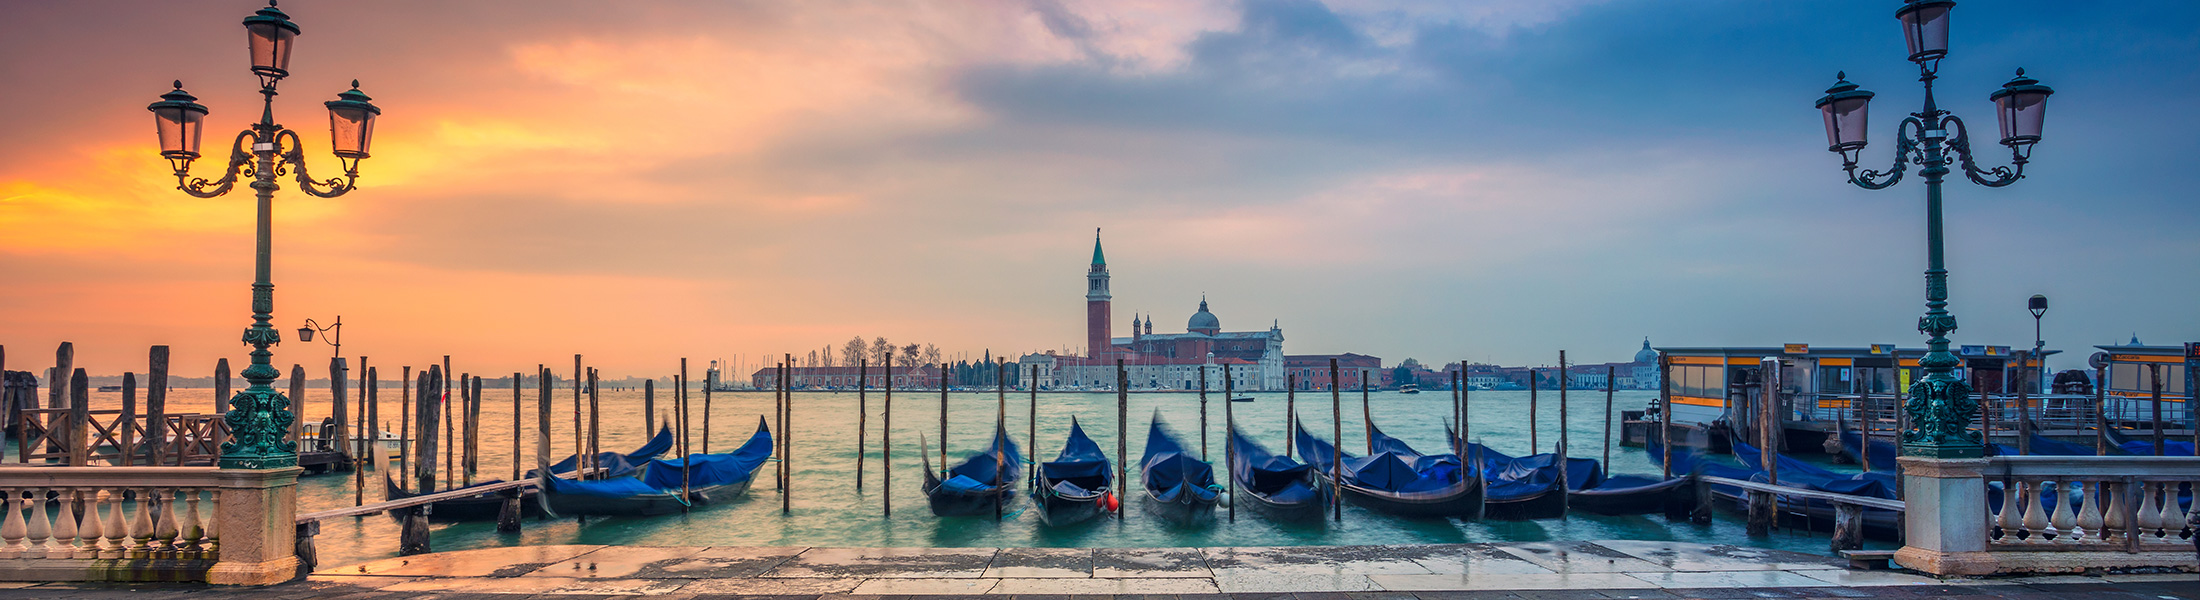 Gondolas at Sunset in Venice Italy in Europe